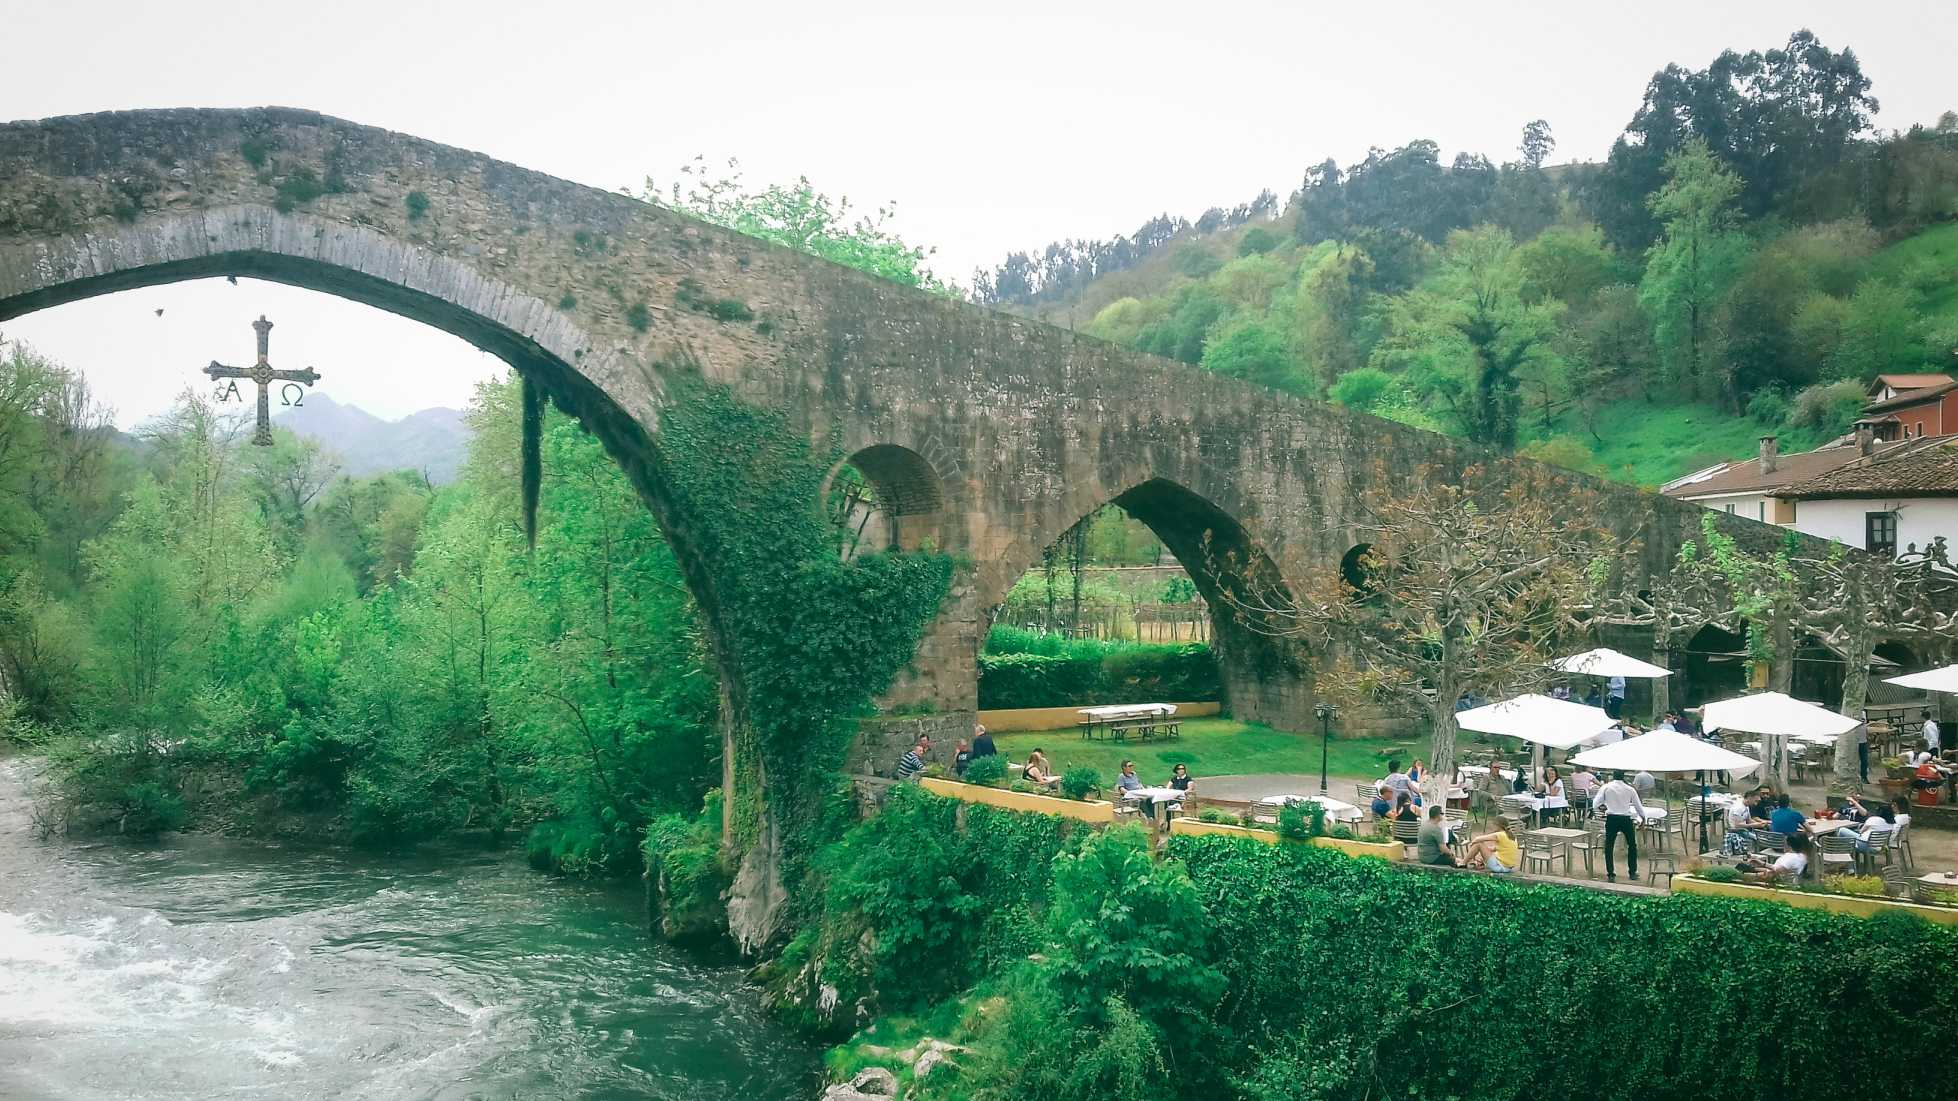 The bridge and visitors in Cangas de Onis